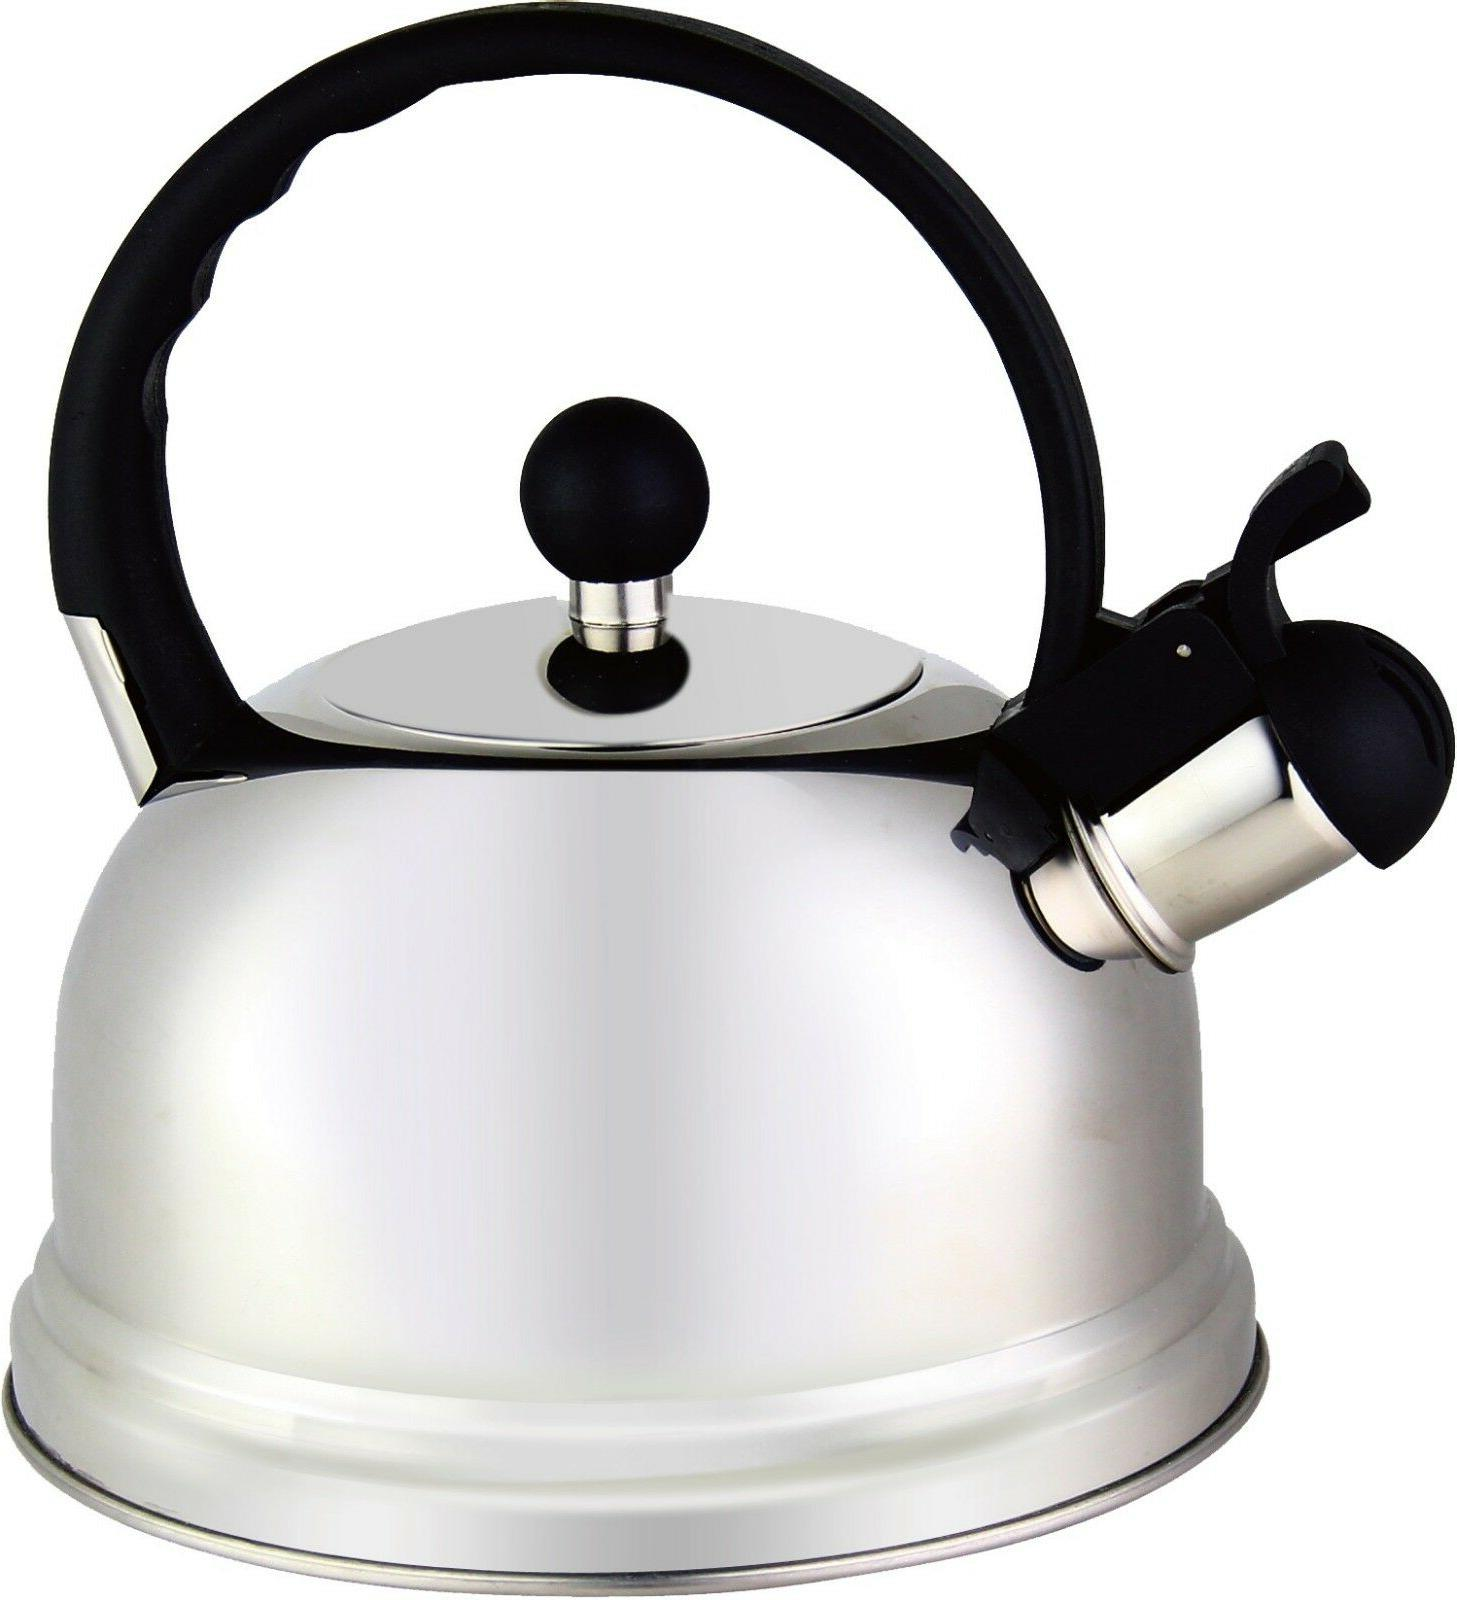 stainless steel ware water whistling